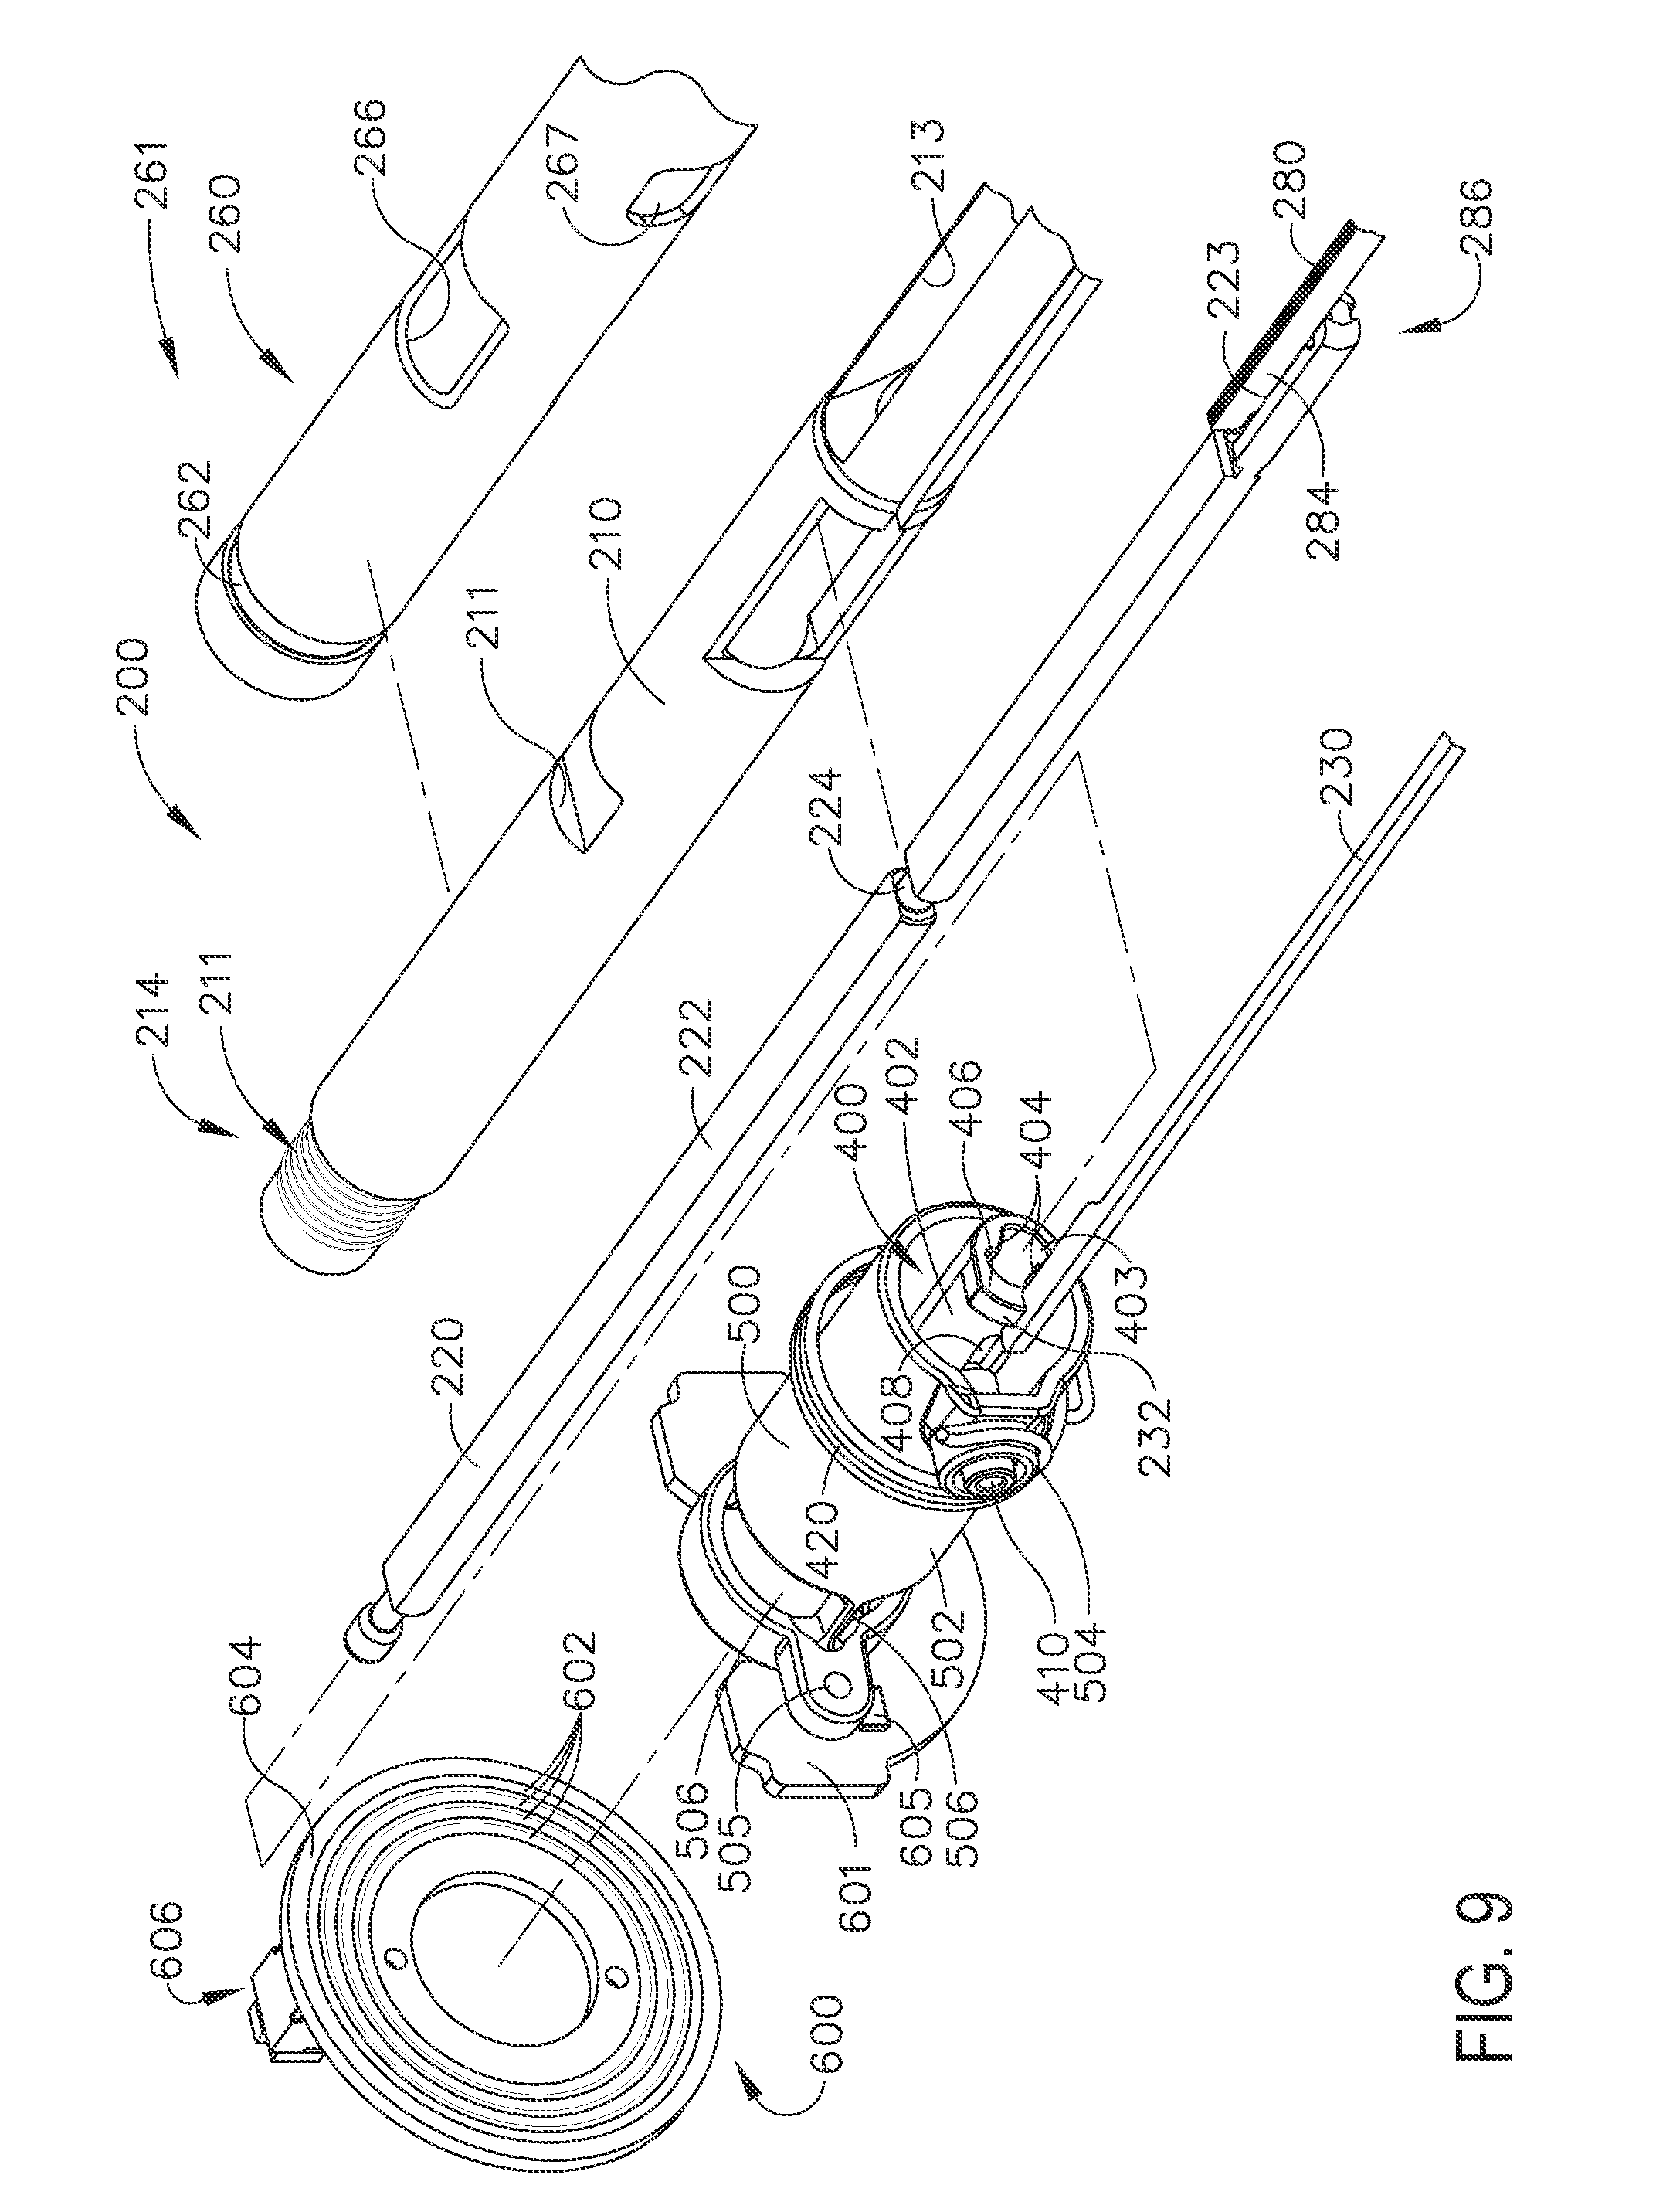 us9895148b2 monitoring speed control and precision incrementing of 1989 Toyota Power Steering Diagram us9895148b2 monitoring speed control and precision incrementing of motor for powered surgical instruments patents